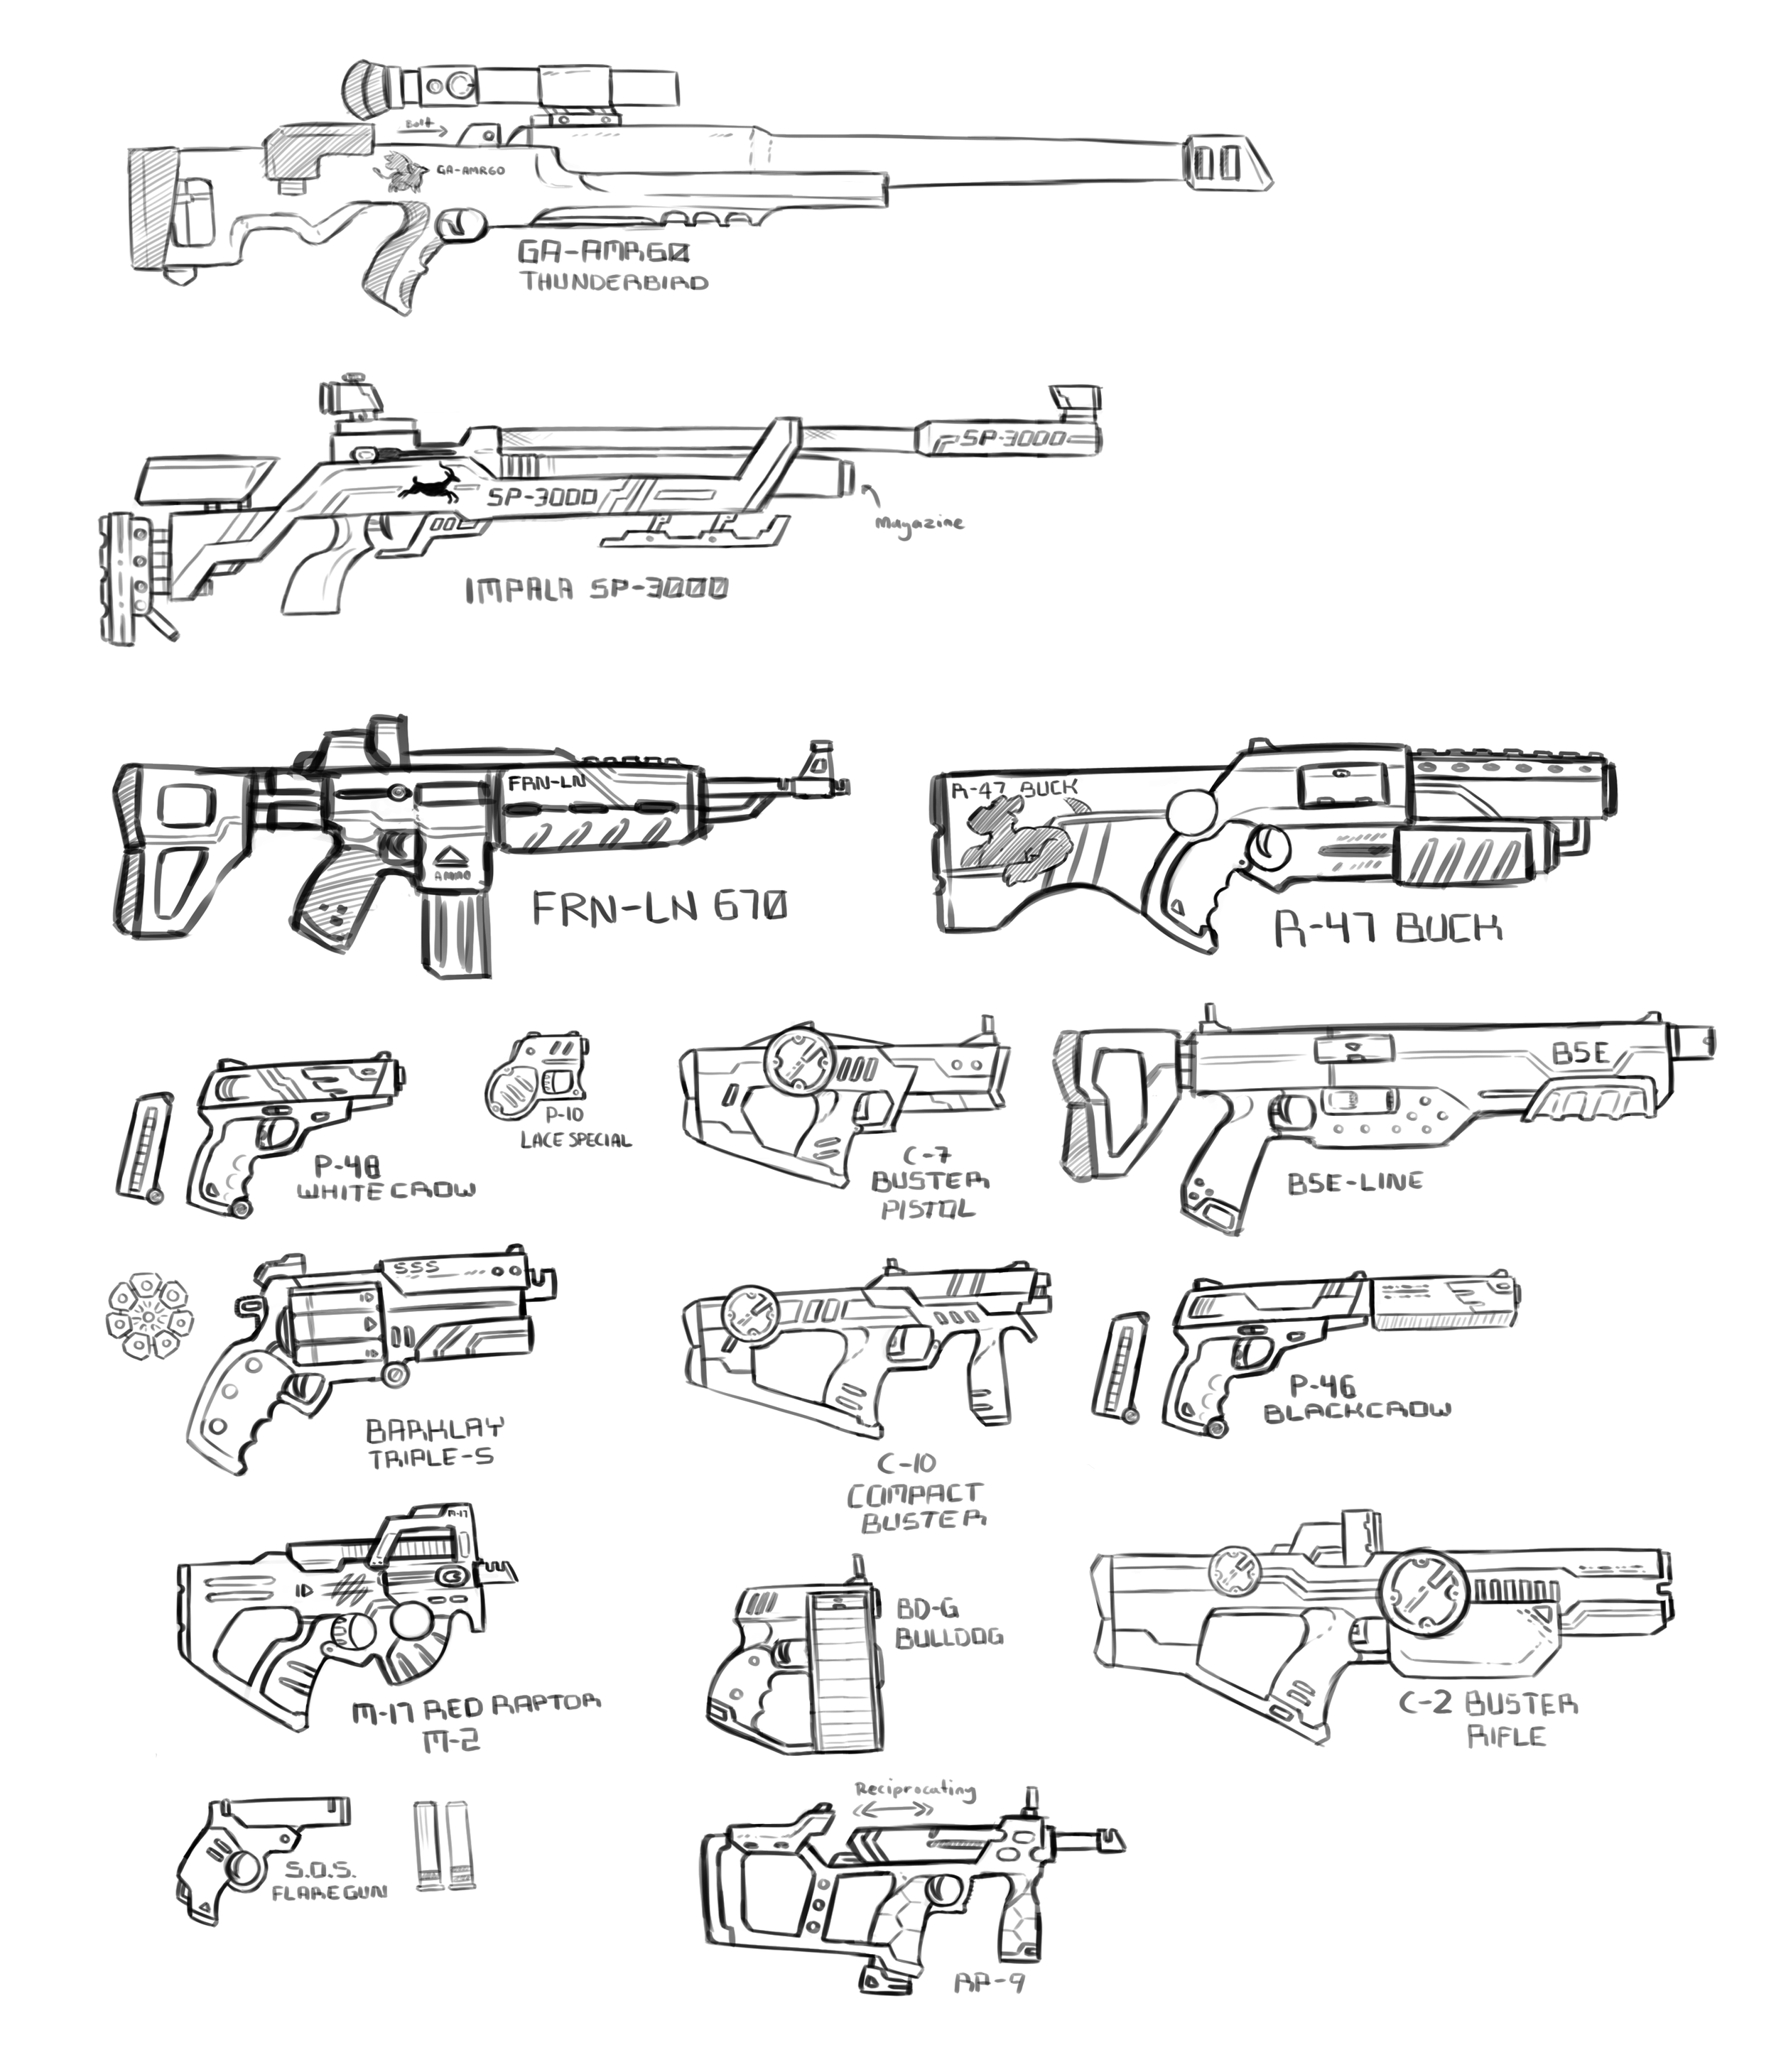 echo6 guns.png